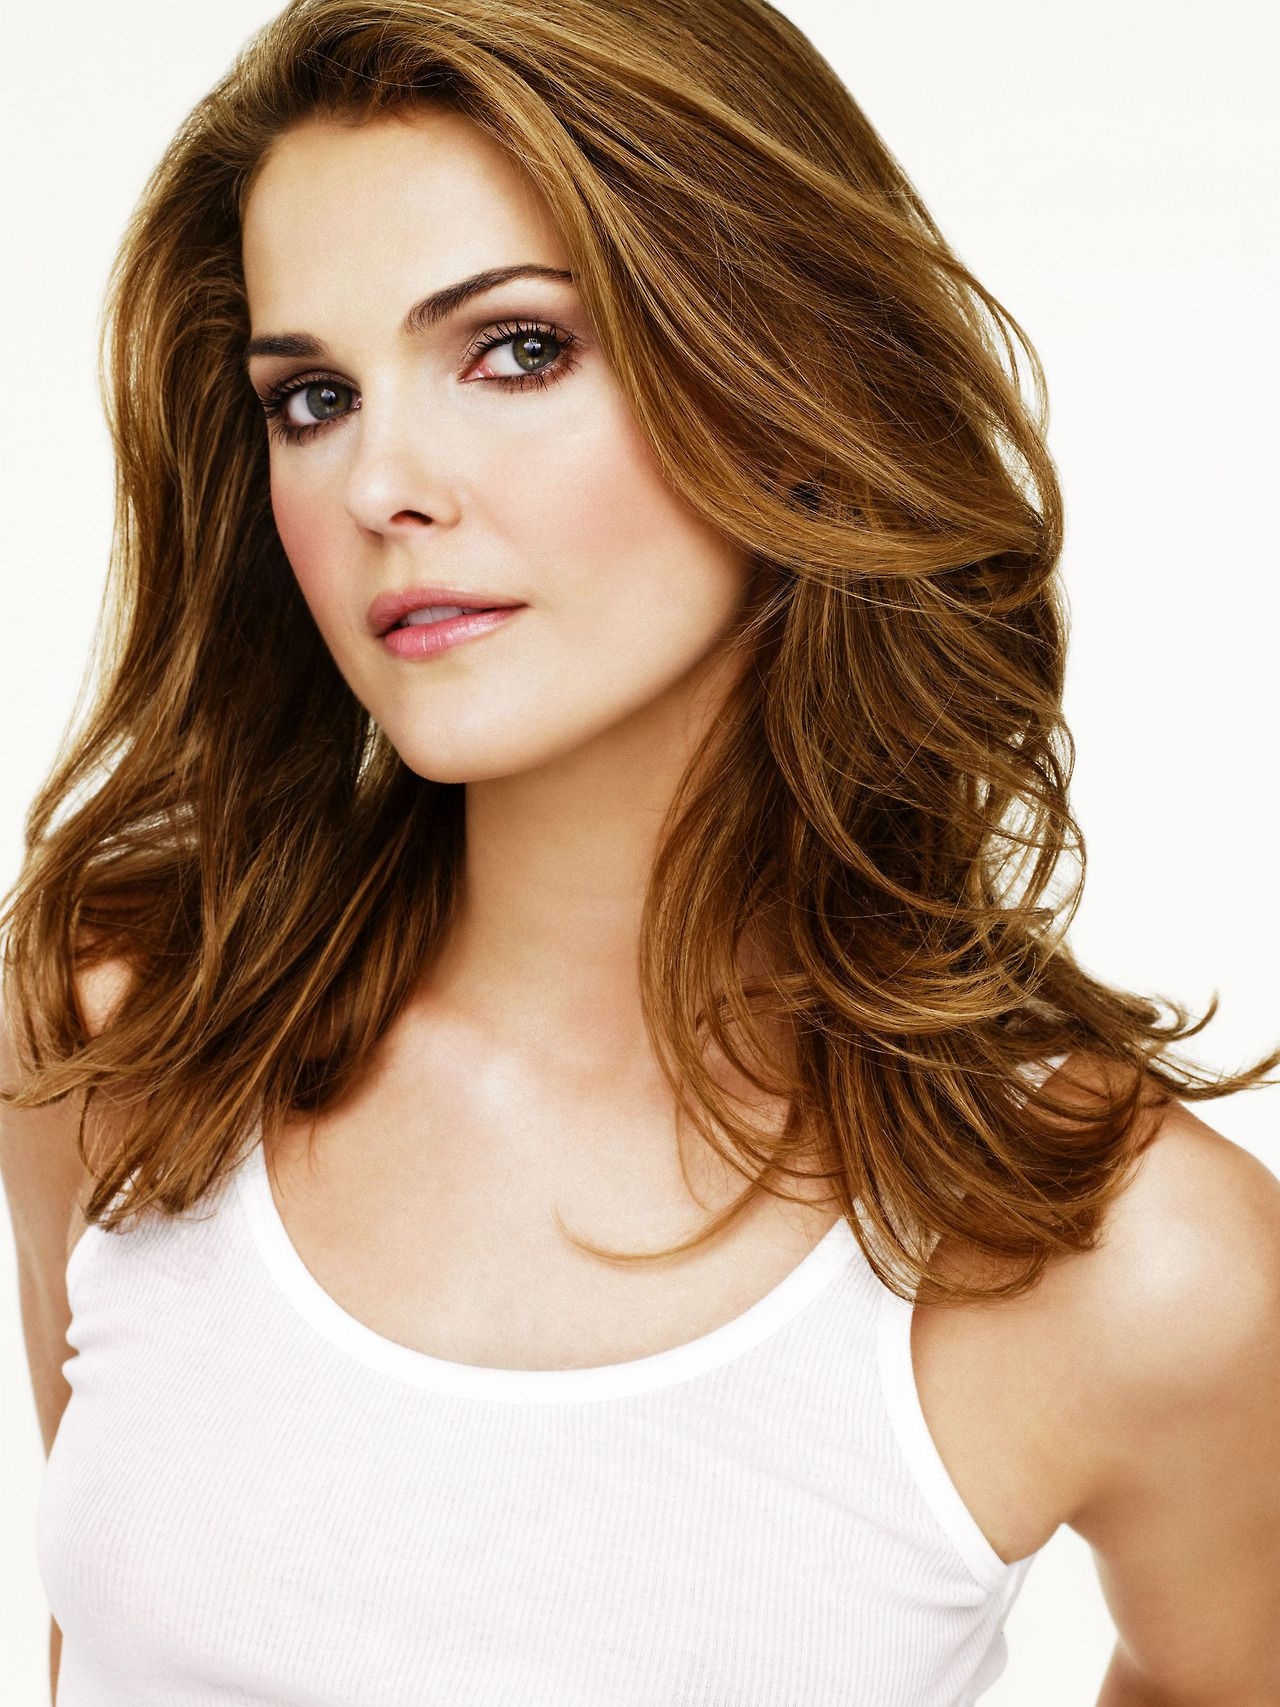 Keri Russell Photoshoot For Gq Magazine By Andrew Eccles 2014